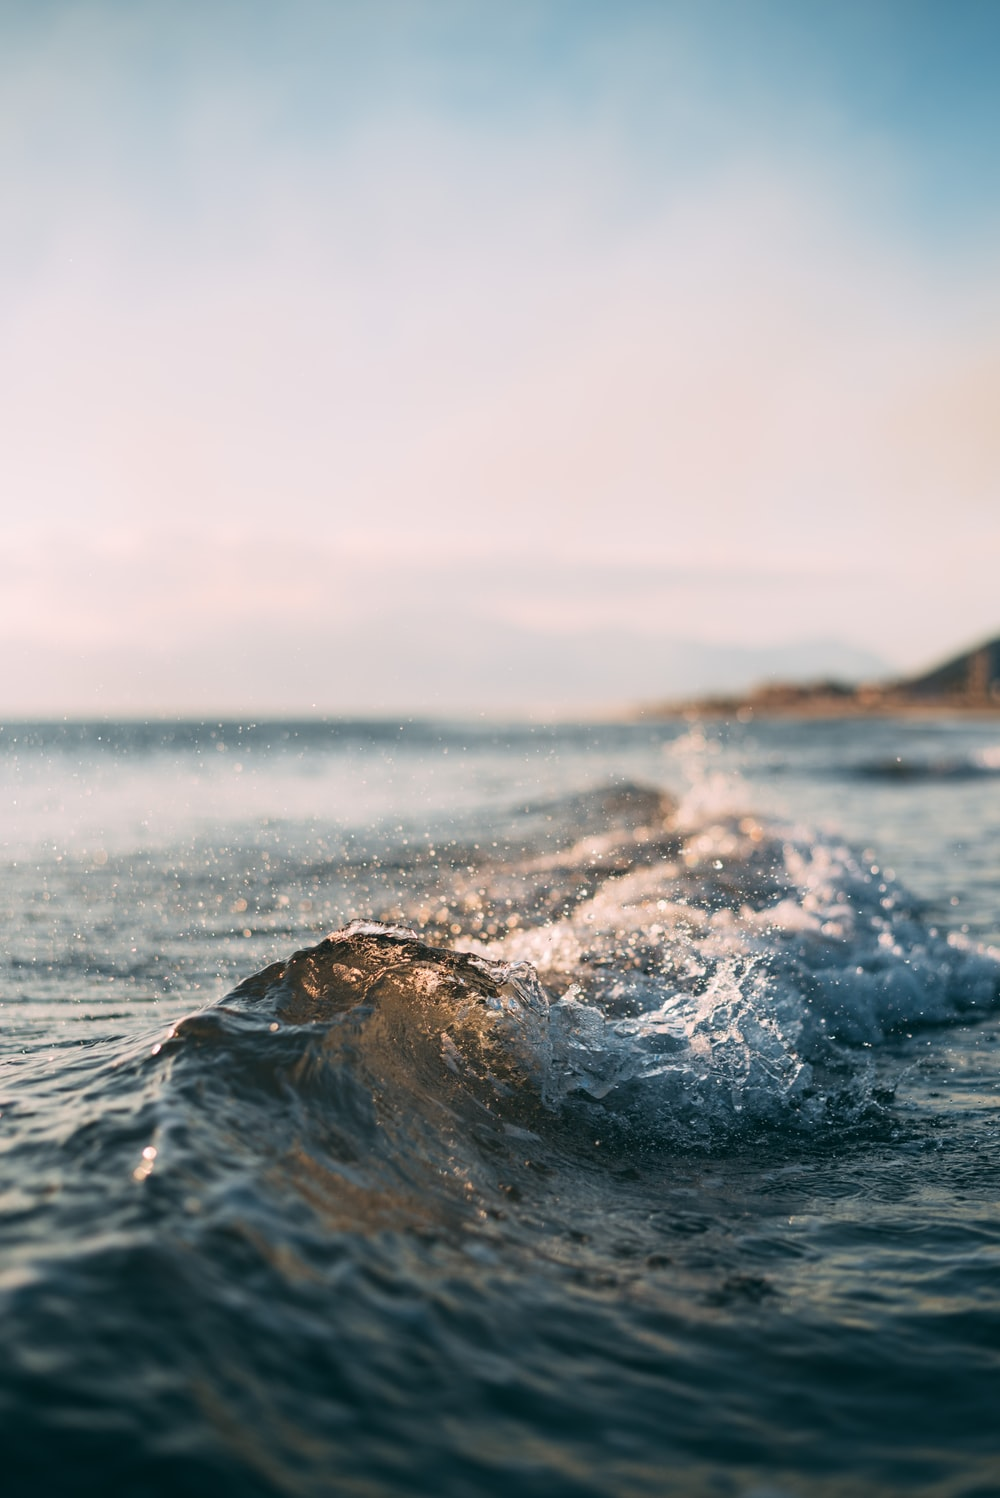 750 Waves Pictures Hq Download Free Images On Unsplash